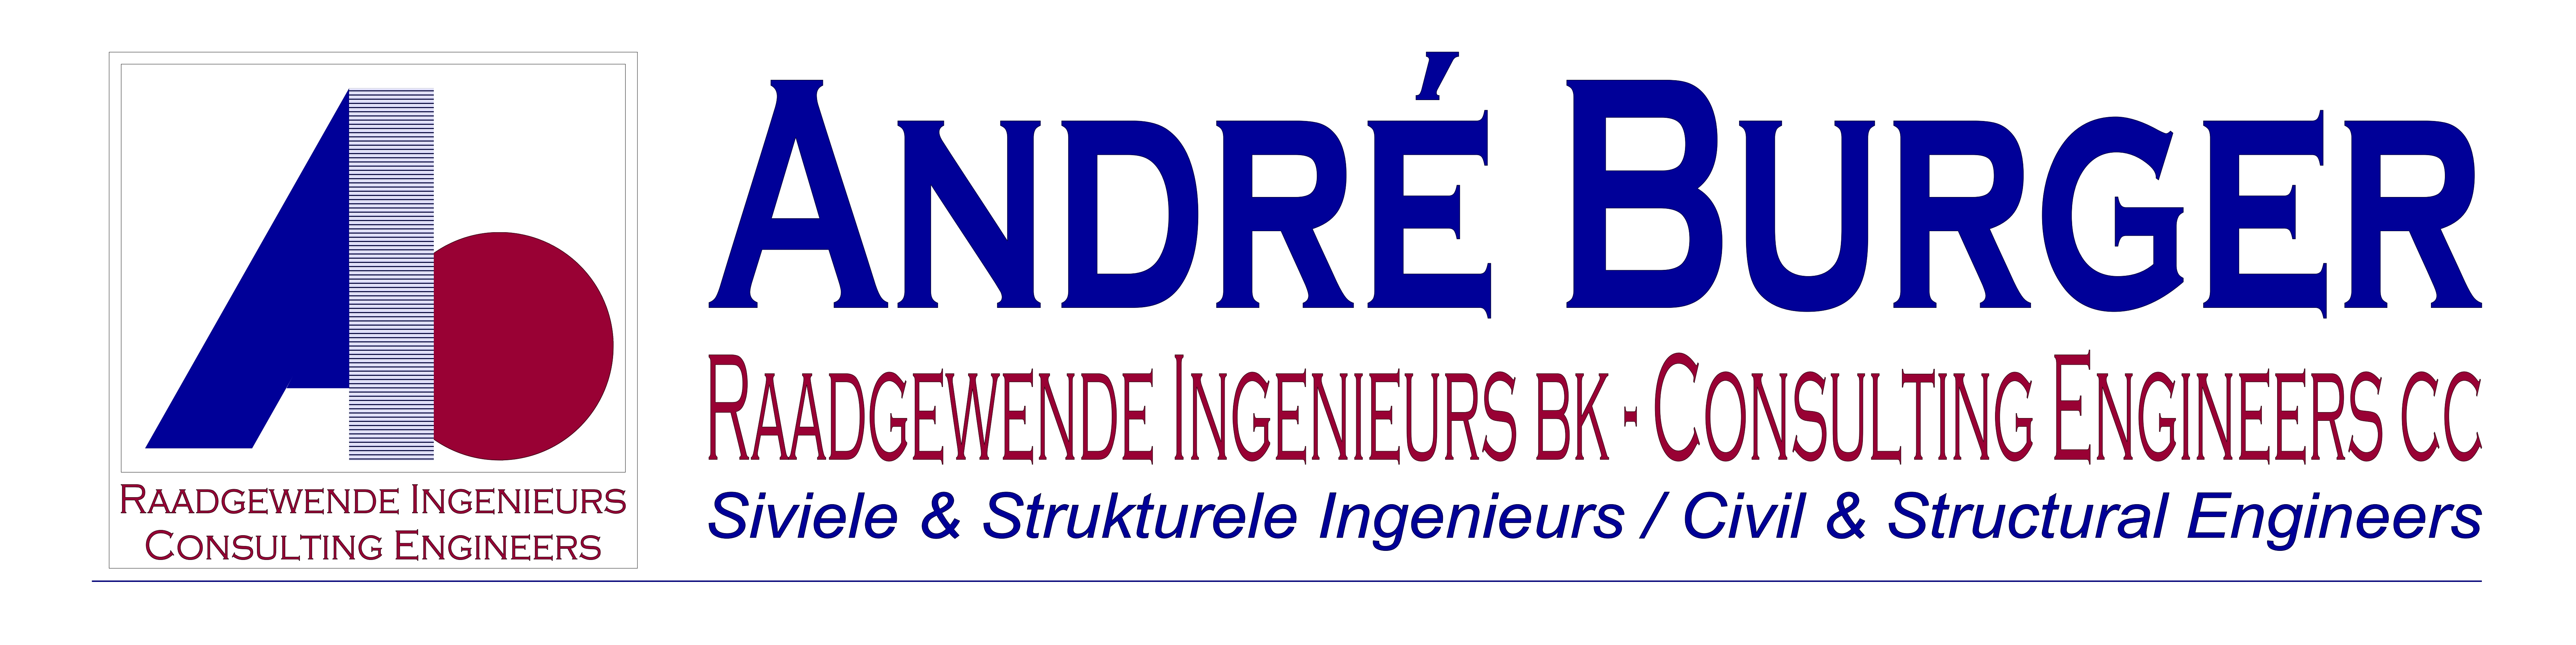 Andre Burger Consulting Engineers